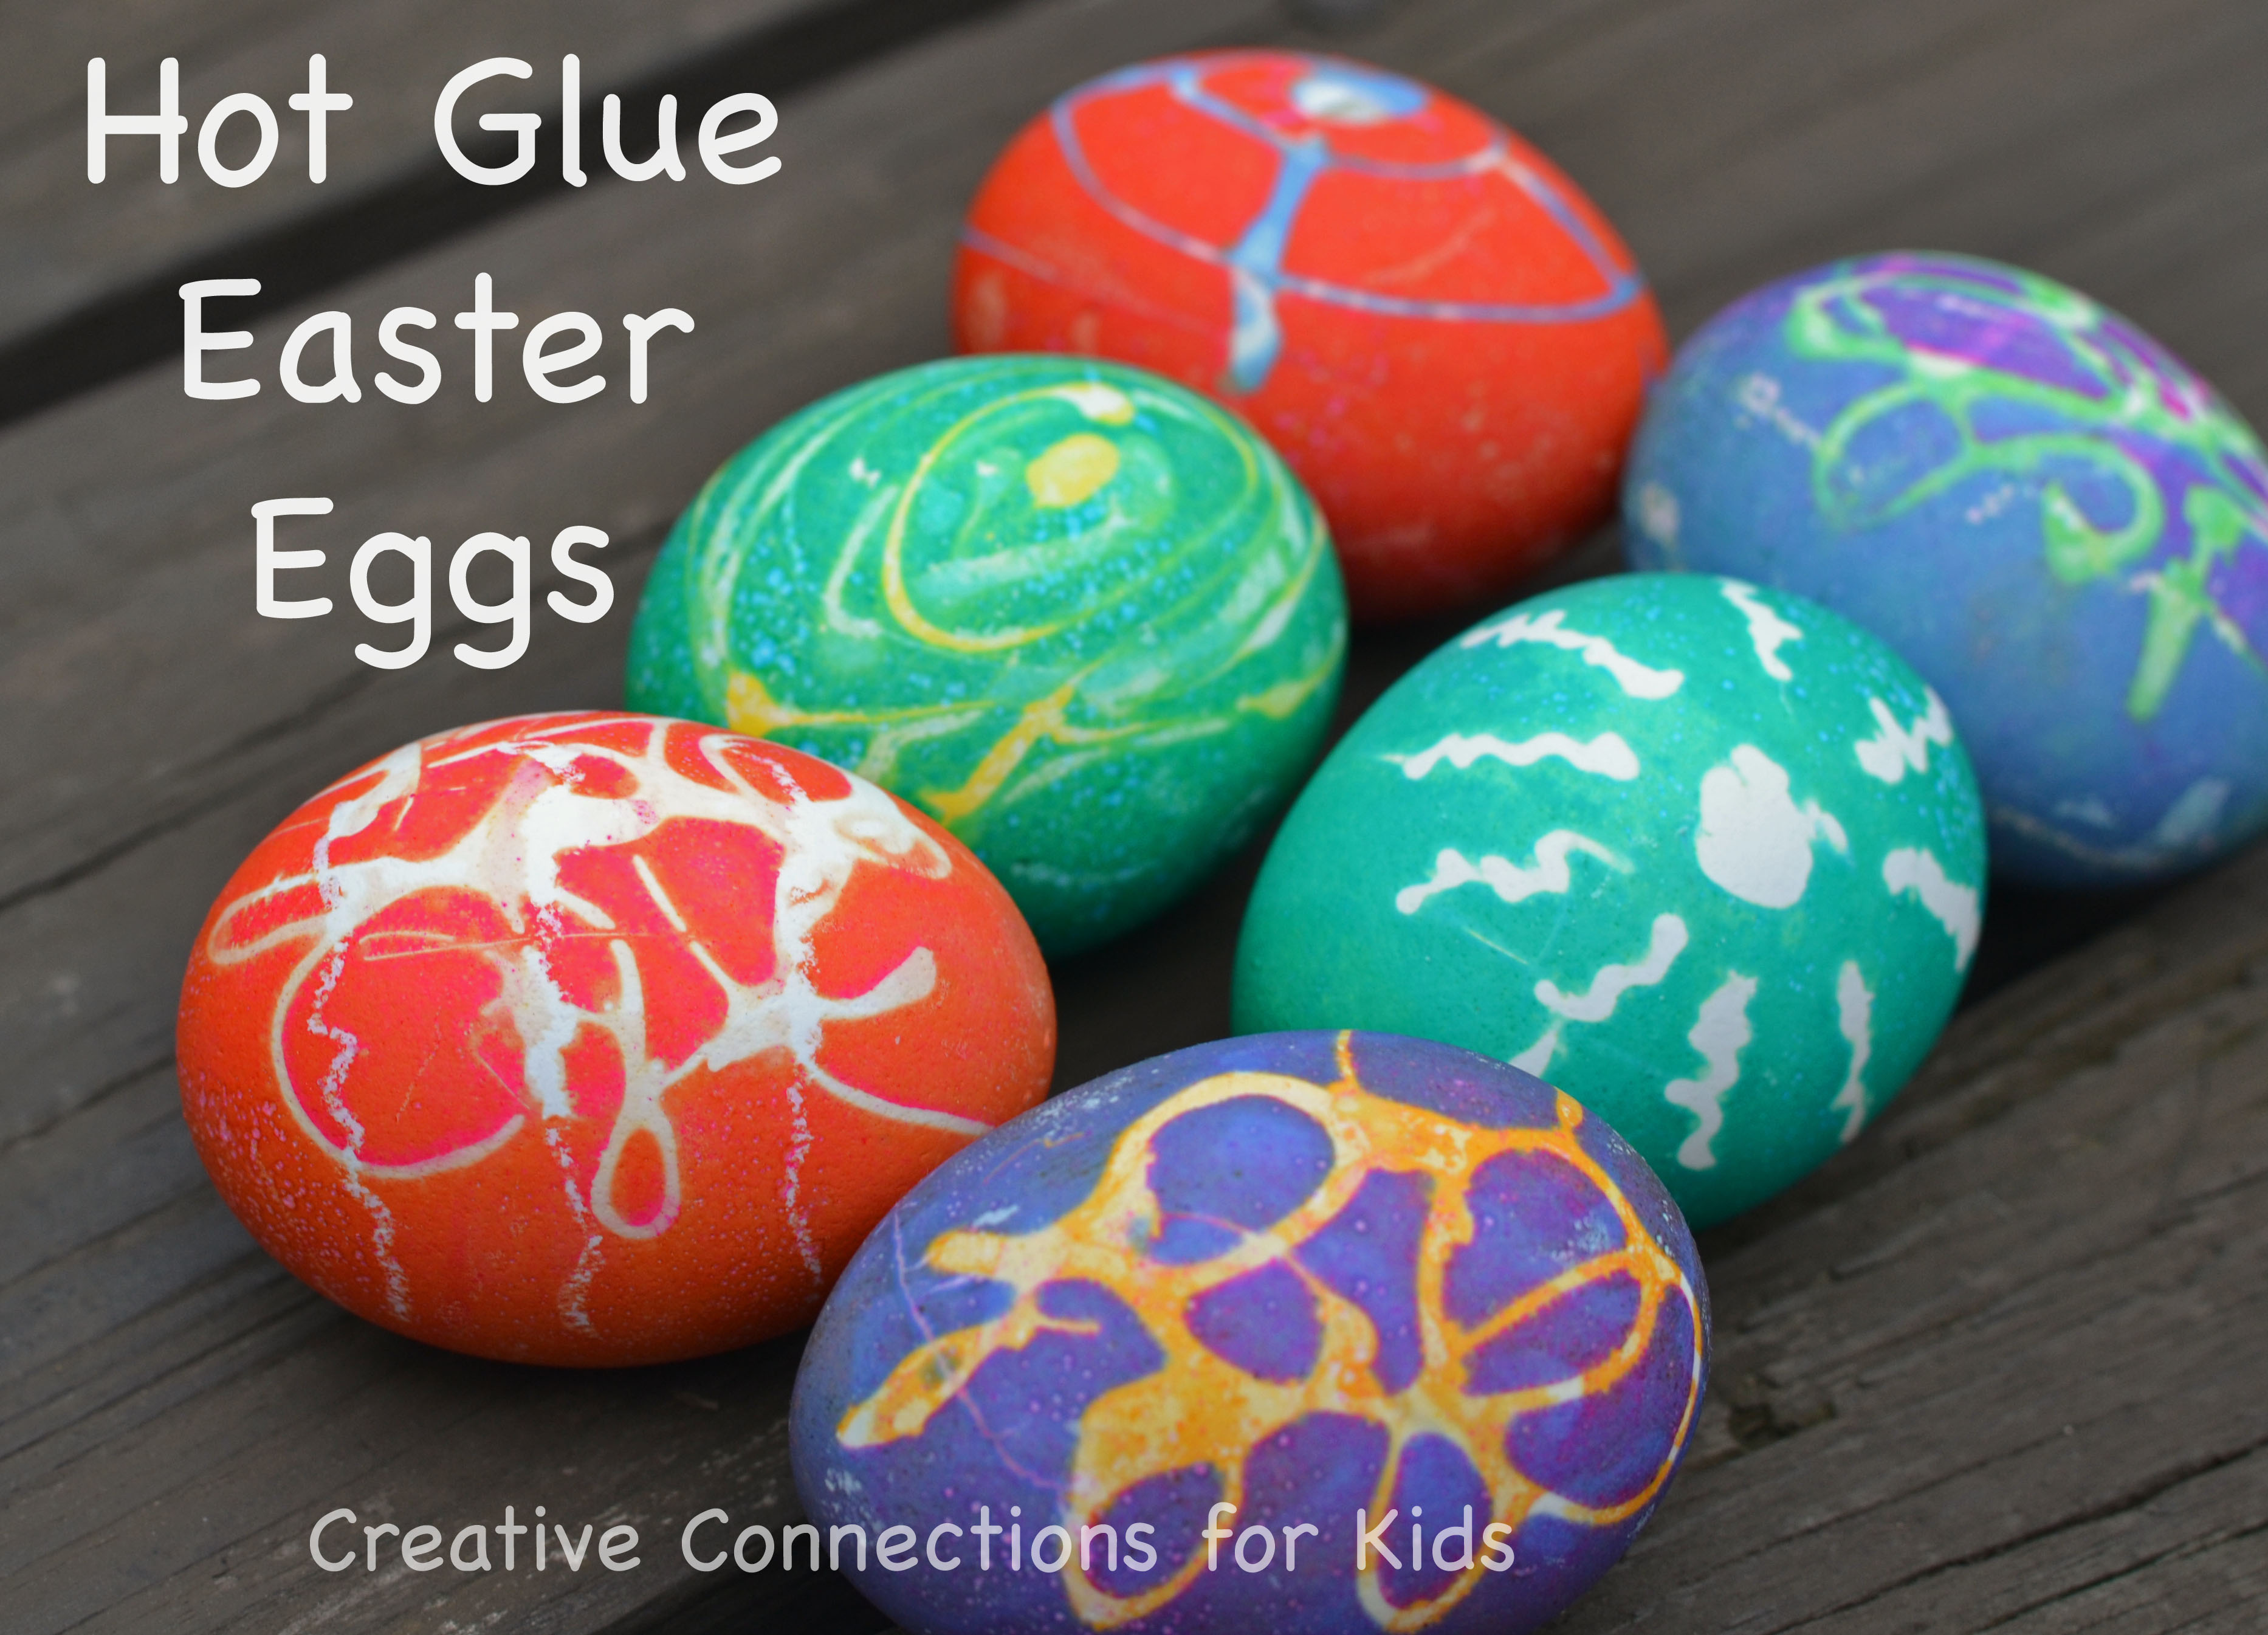 - Hot Glue + Color = Beautiful Easter Eggs